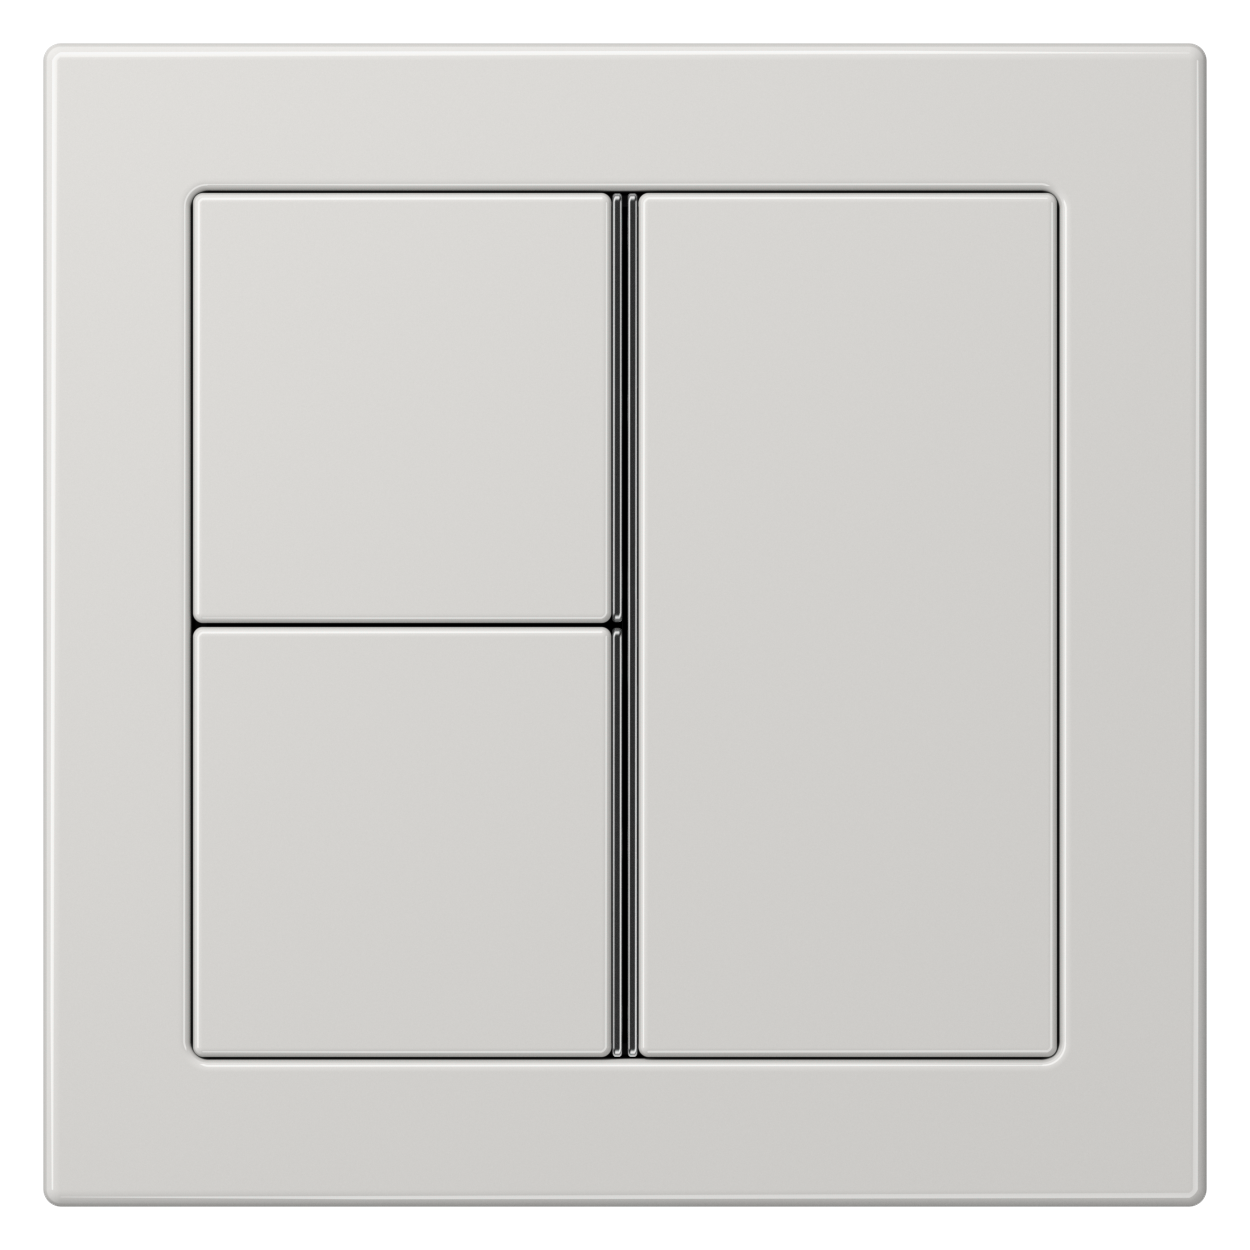 JUNG_Flat_Design_light-grey_3button